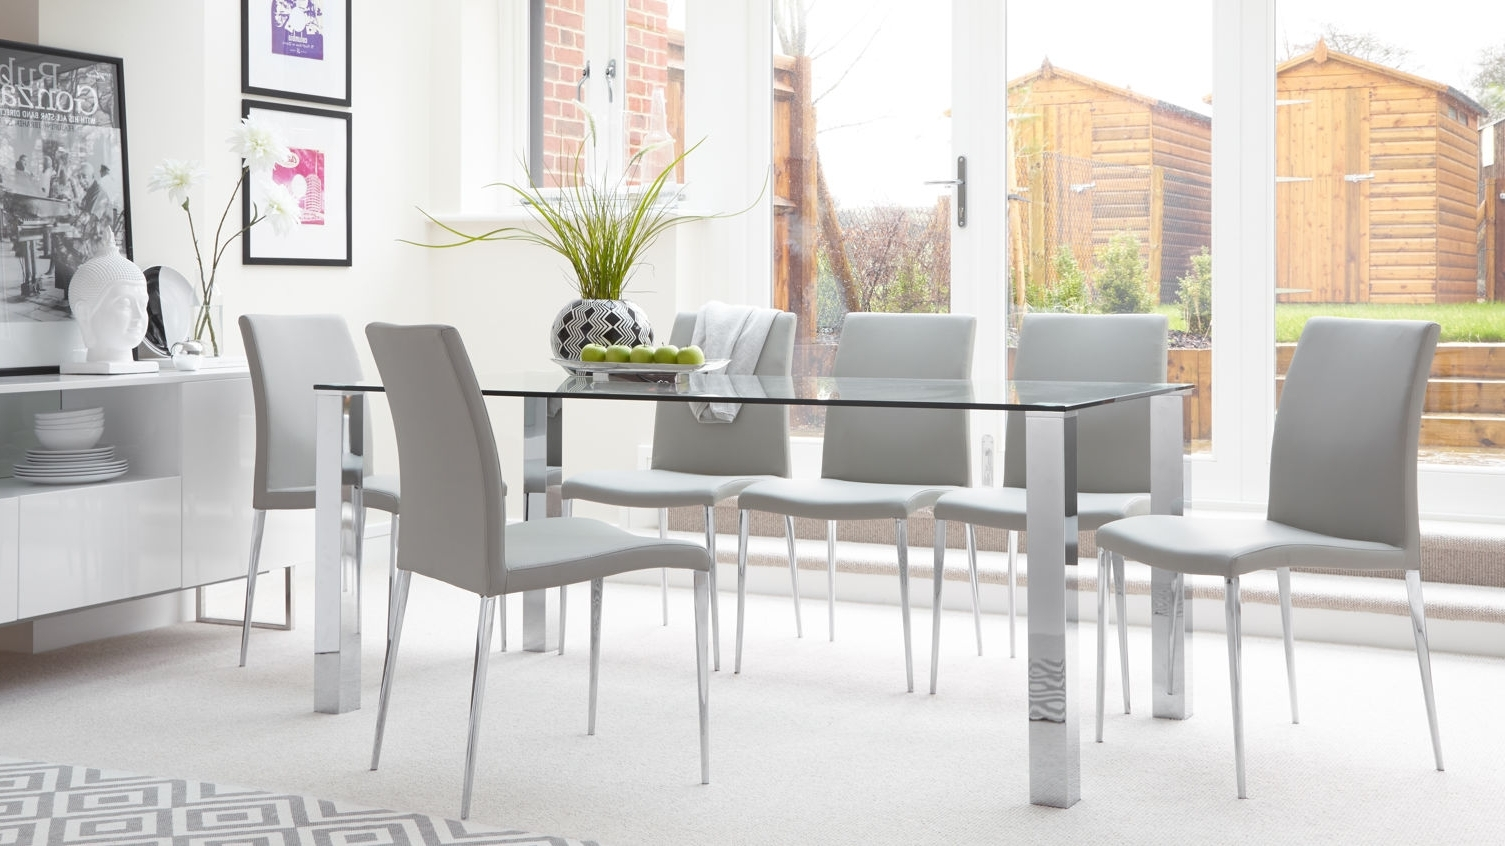 White Dining Tables 8 Seater Regarding Favorite Glass Top Dining Table With 8 Chairs – Glass Decorating Ideas (View 23 of 25)